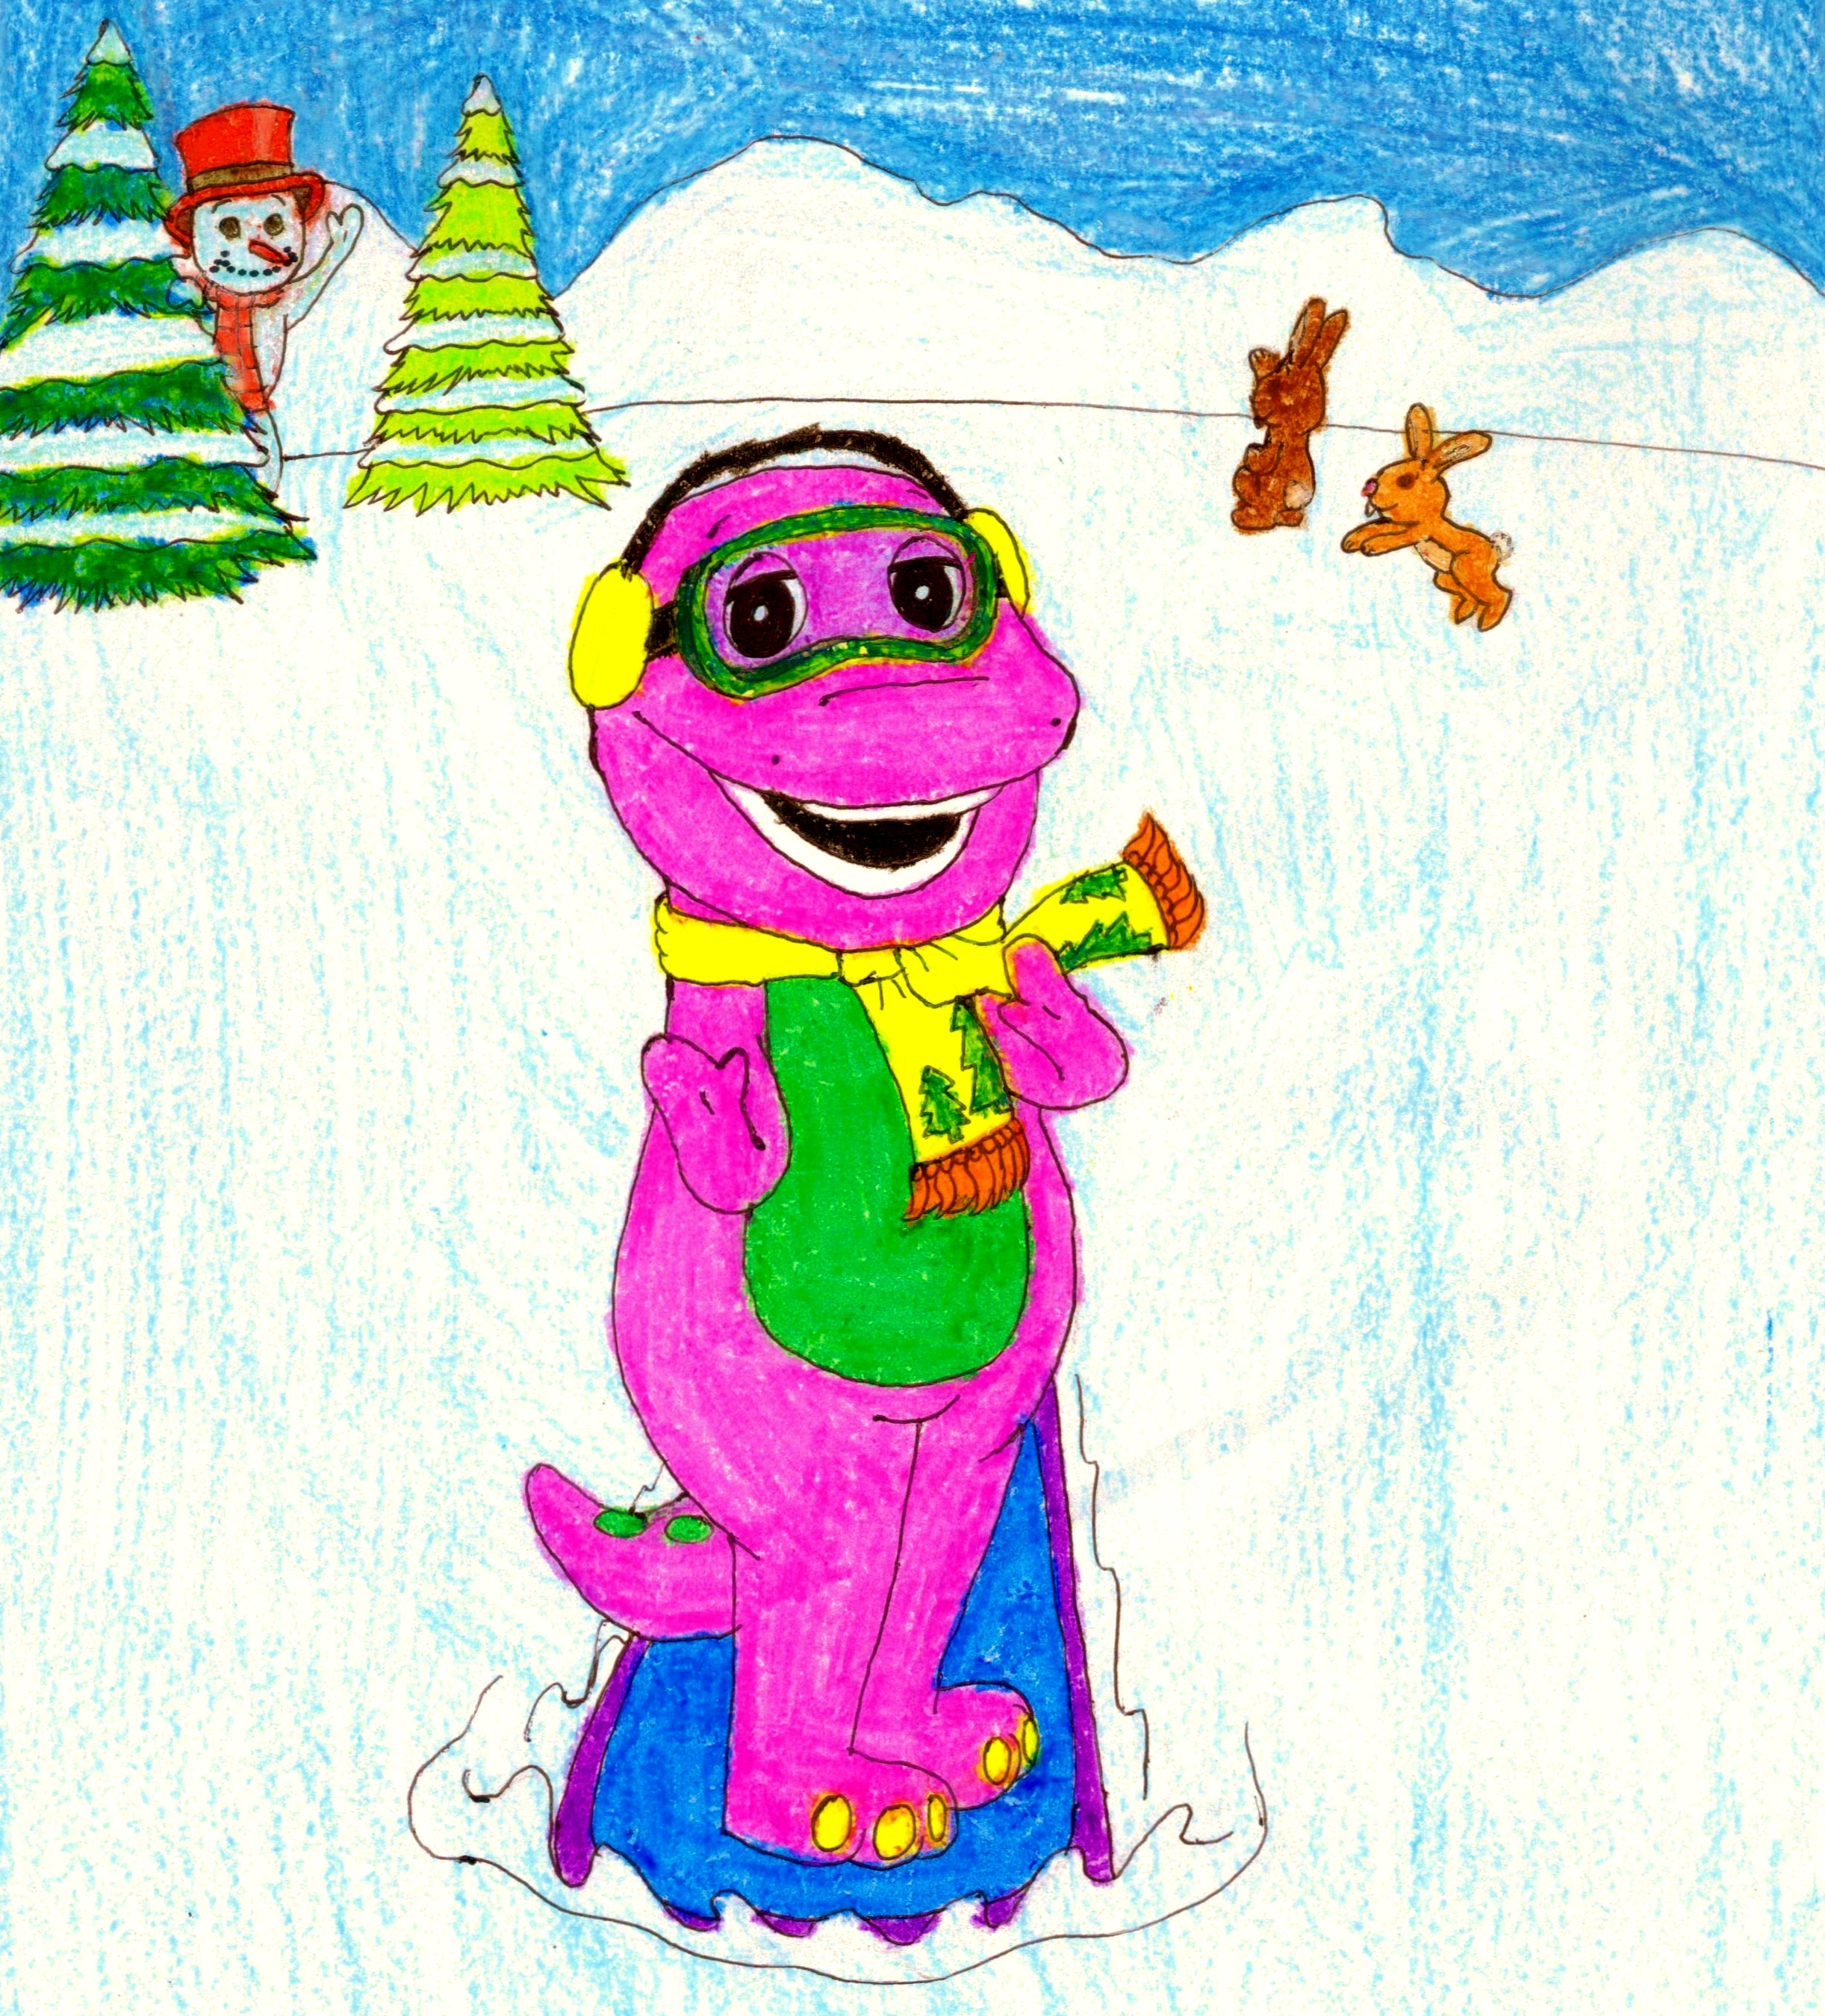 Barney And The Backyard Gang A Day At The Beach: Barney Goes Snowboarding By BestBarneyFan On DeviantArt